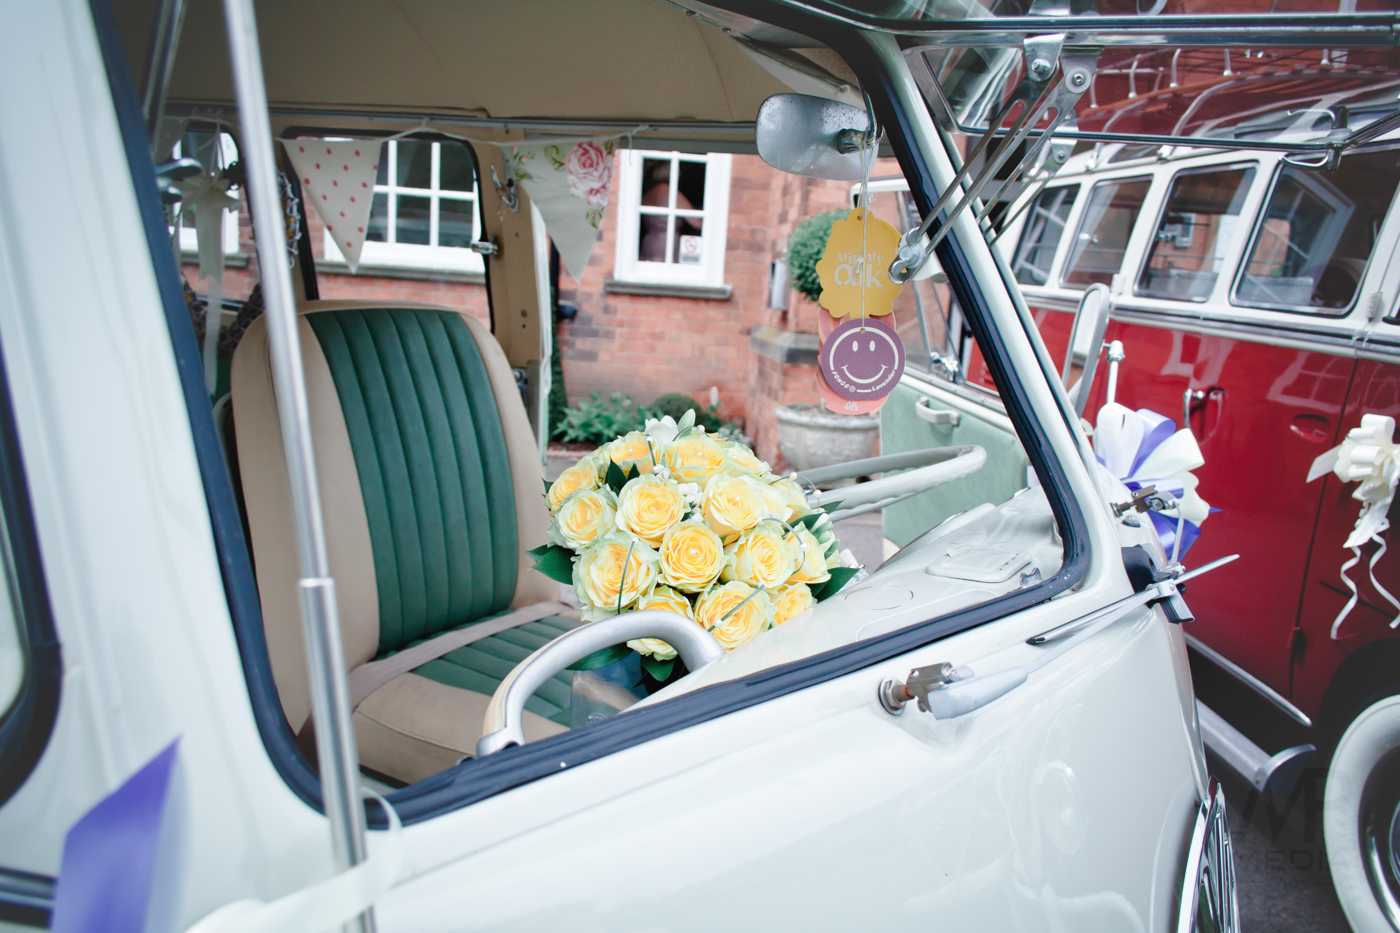 381 - Chris and Natalies Wedding (MAIN) - DO NOT SHARE THIS IMAGES ONLINE -4605.JPG